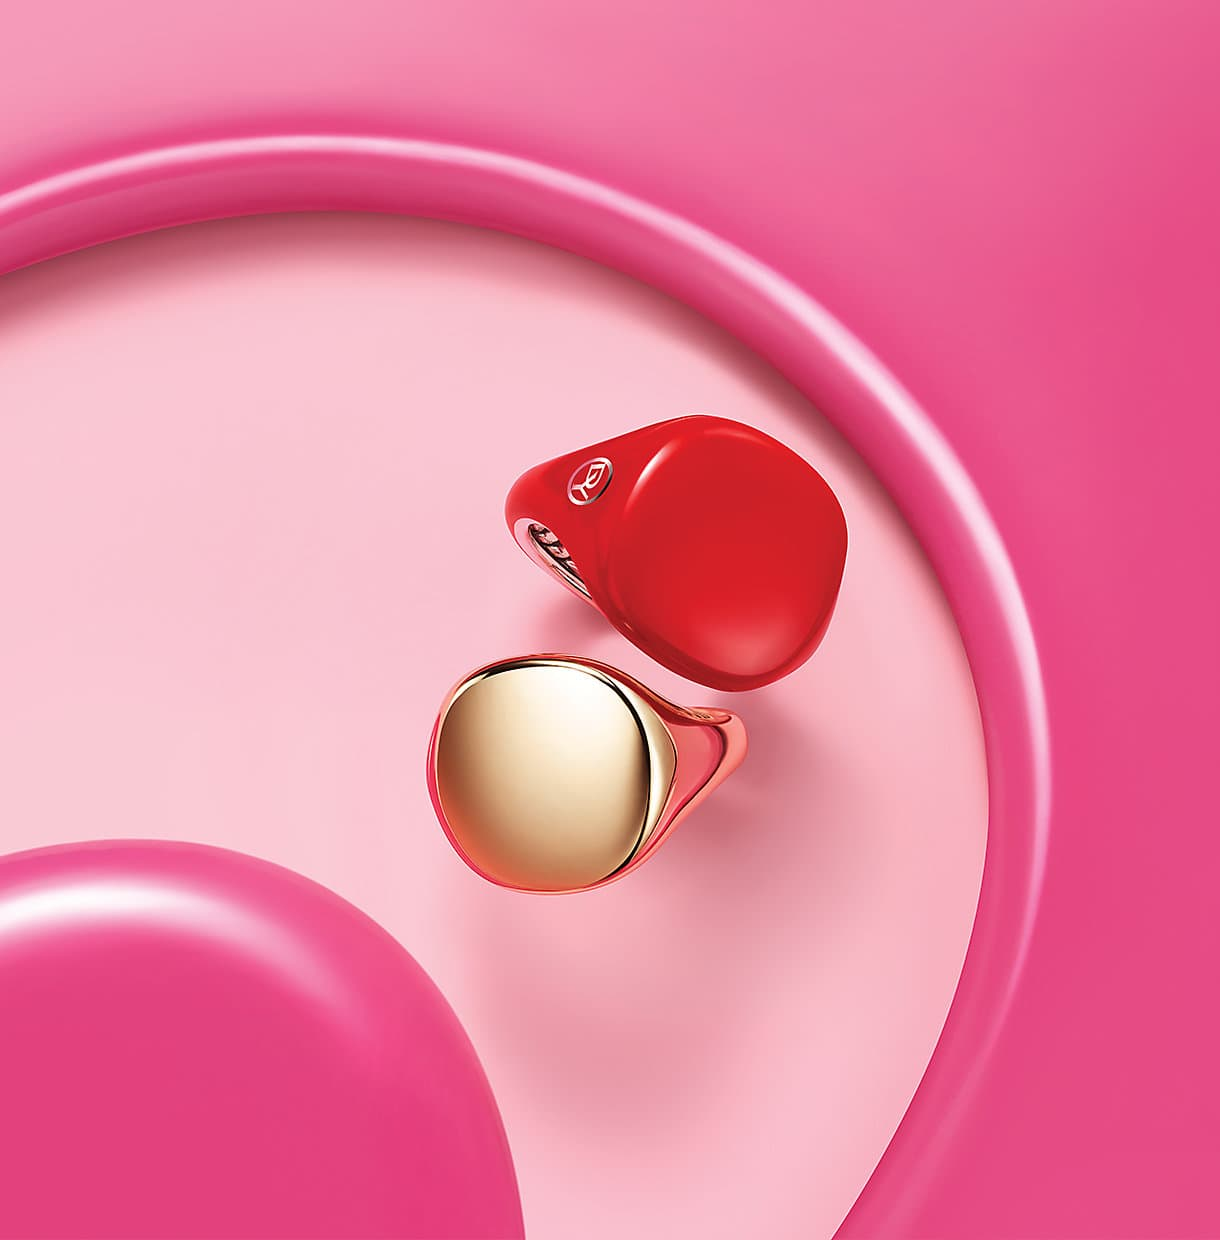 Pinky Rings in sterling silver with red enamel and 18K yellow gold arranged between pools of bright pink paint.